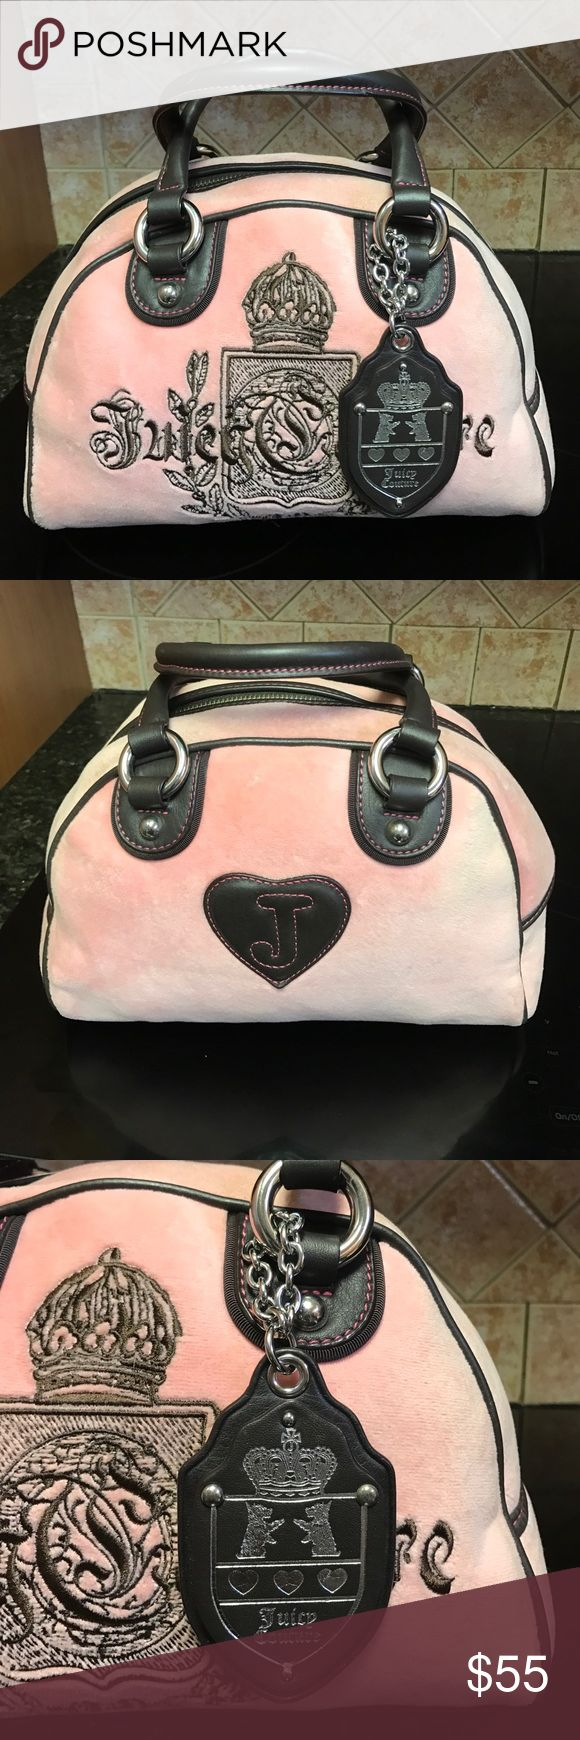 Designer juicy couture purse 👛 handbag Handbag 👜 in baby pink velour brown leather handles with silver metal chains and logos one zipper pocket and two small pockets inside , with a heart mirror look 👀 new very good condition Juicy Couture Bags